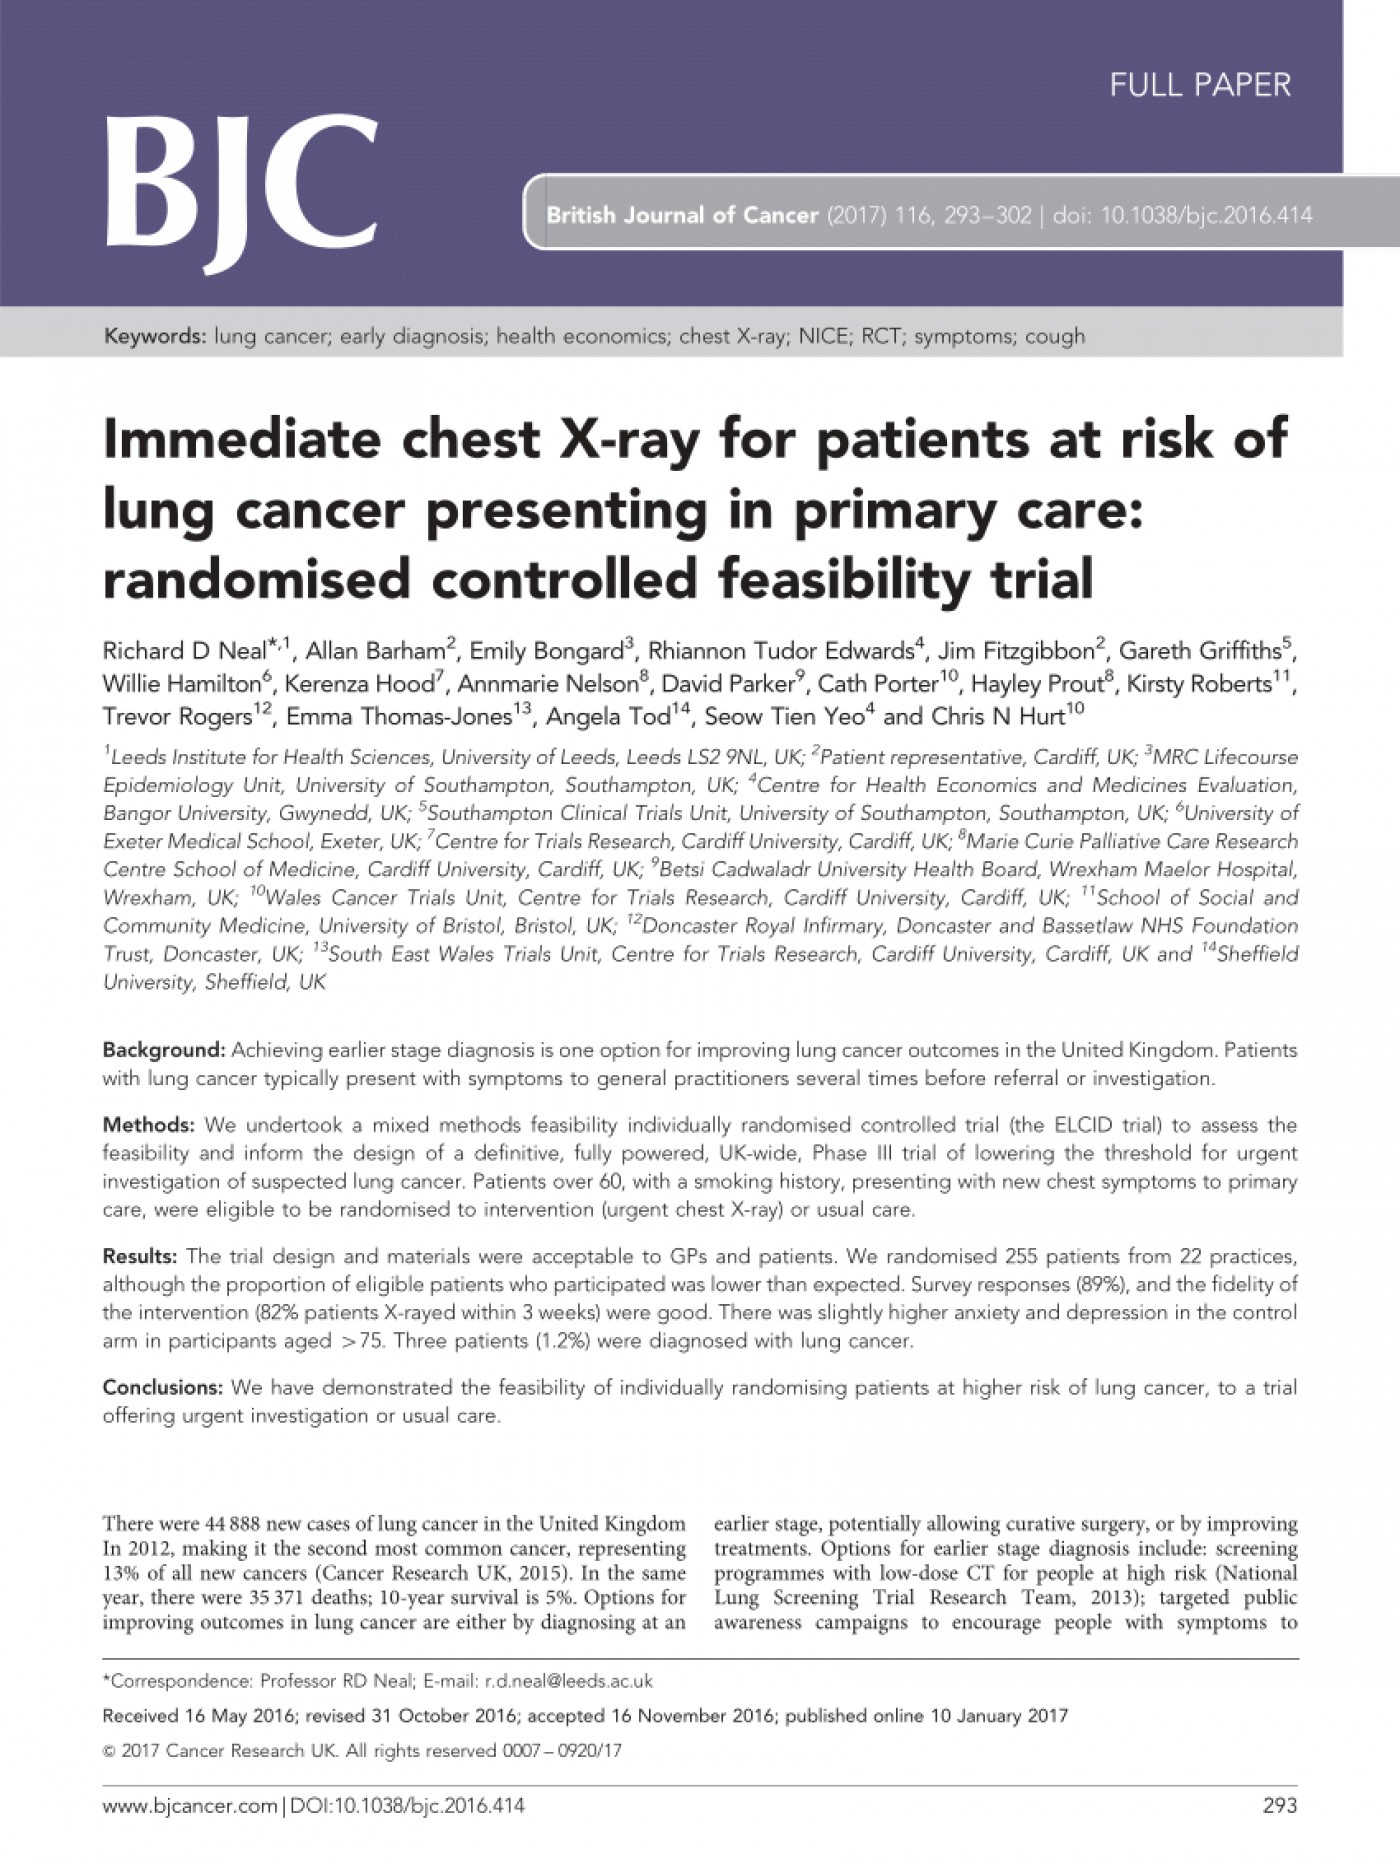 010 Lung Cancer Research Paper Conclusion Unusual 1400